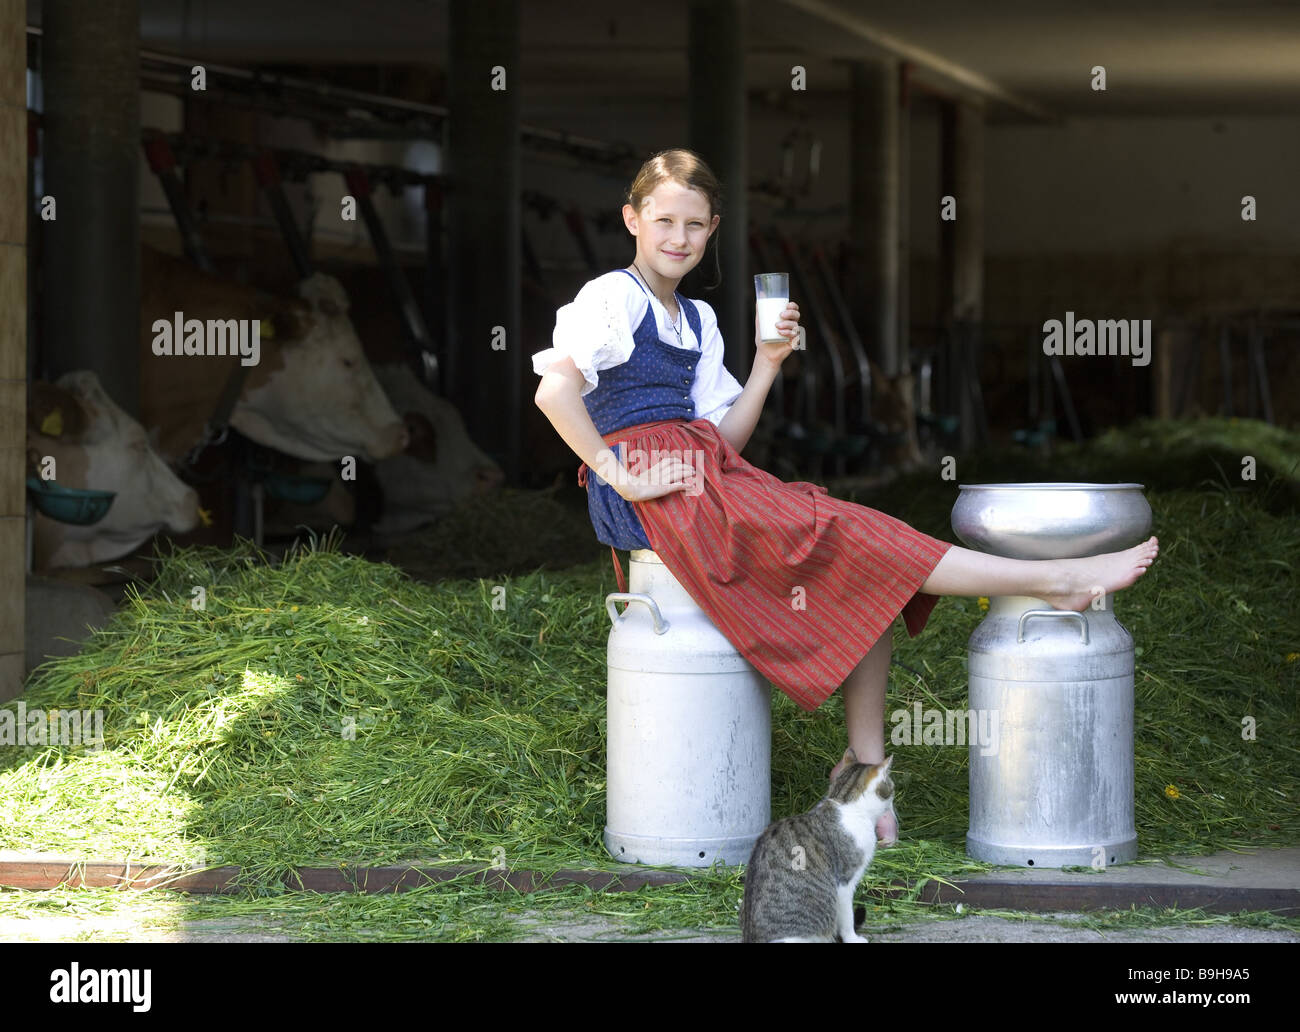 http://c8.alamy.com/comp/B9H9A5/girl-farm-milk-can-sitting-glasses-milk-cat-drink-stall-cows-13-years-B9H9A5.jpg